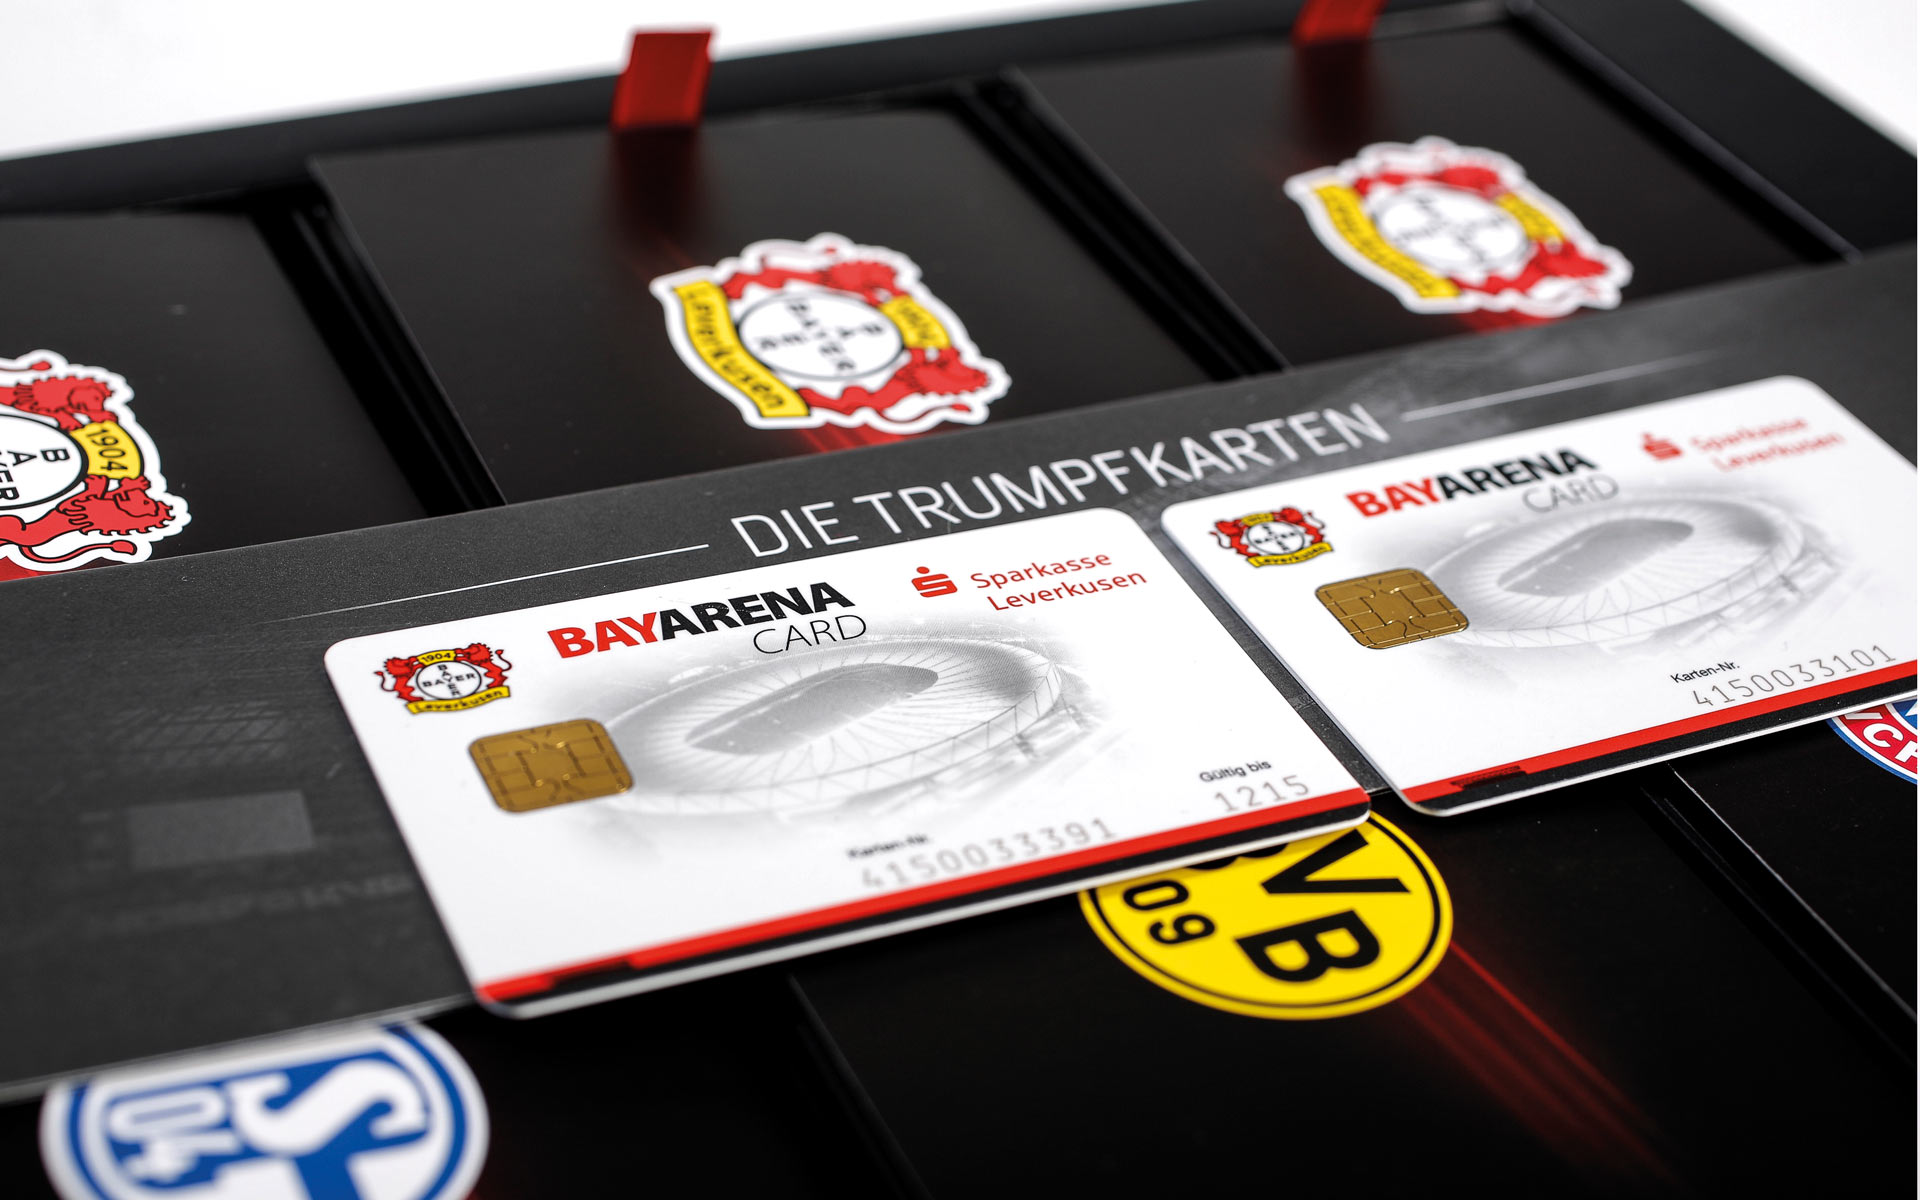 Bayer 04 VIP-Ticketbox, BayArena Card